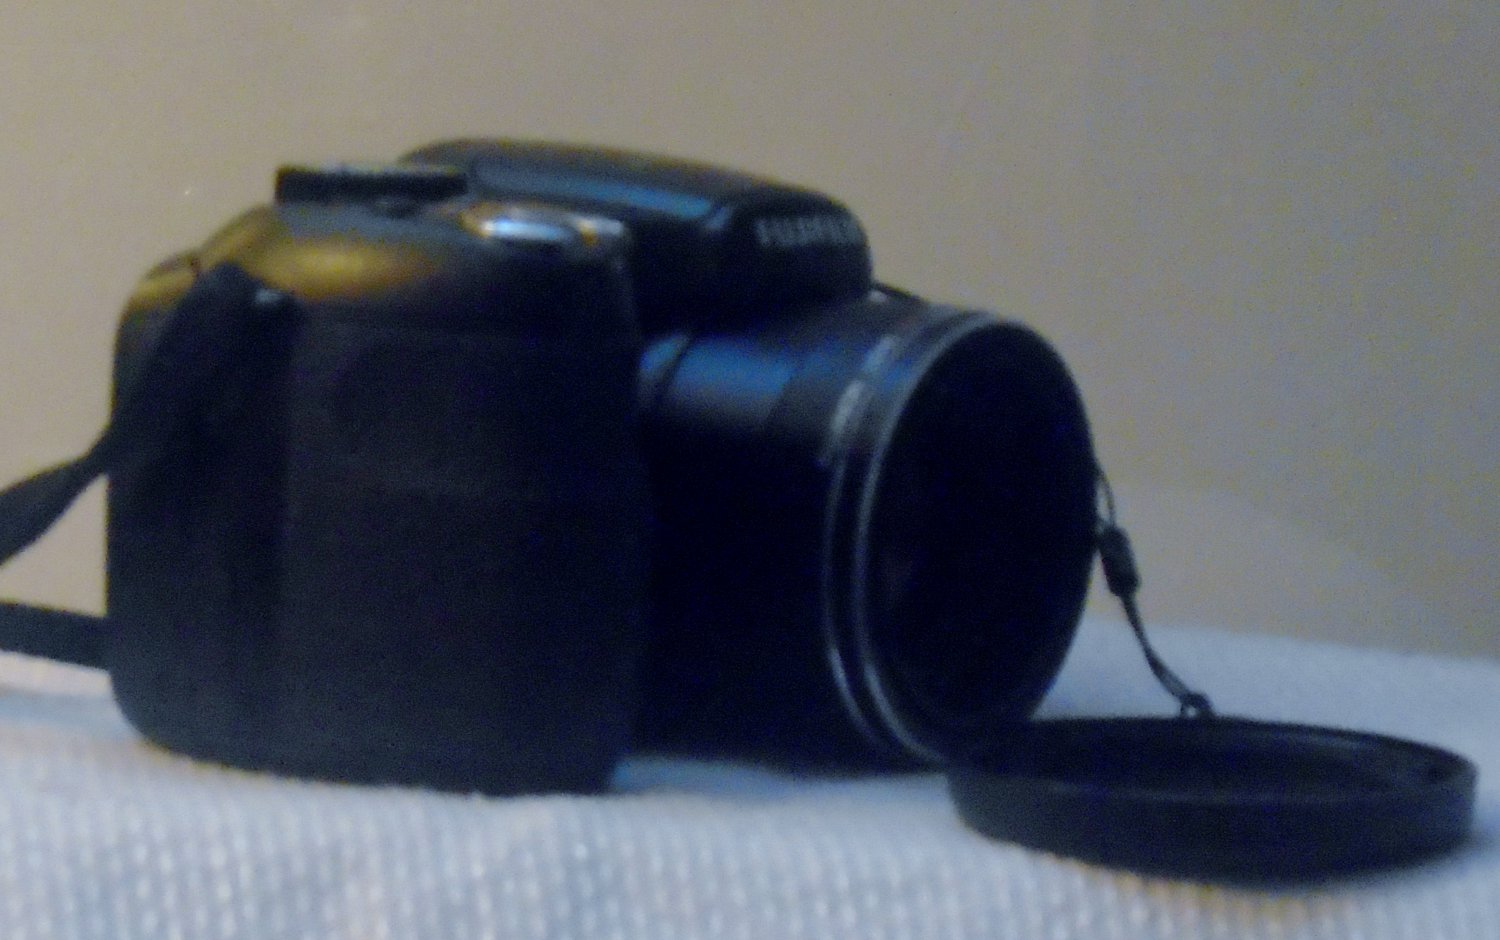 Fujifilm FinePix S Series S17005.---5V 5.5W Digital Camera - Black